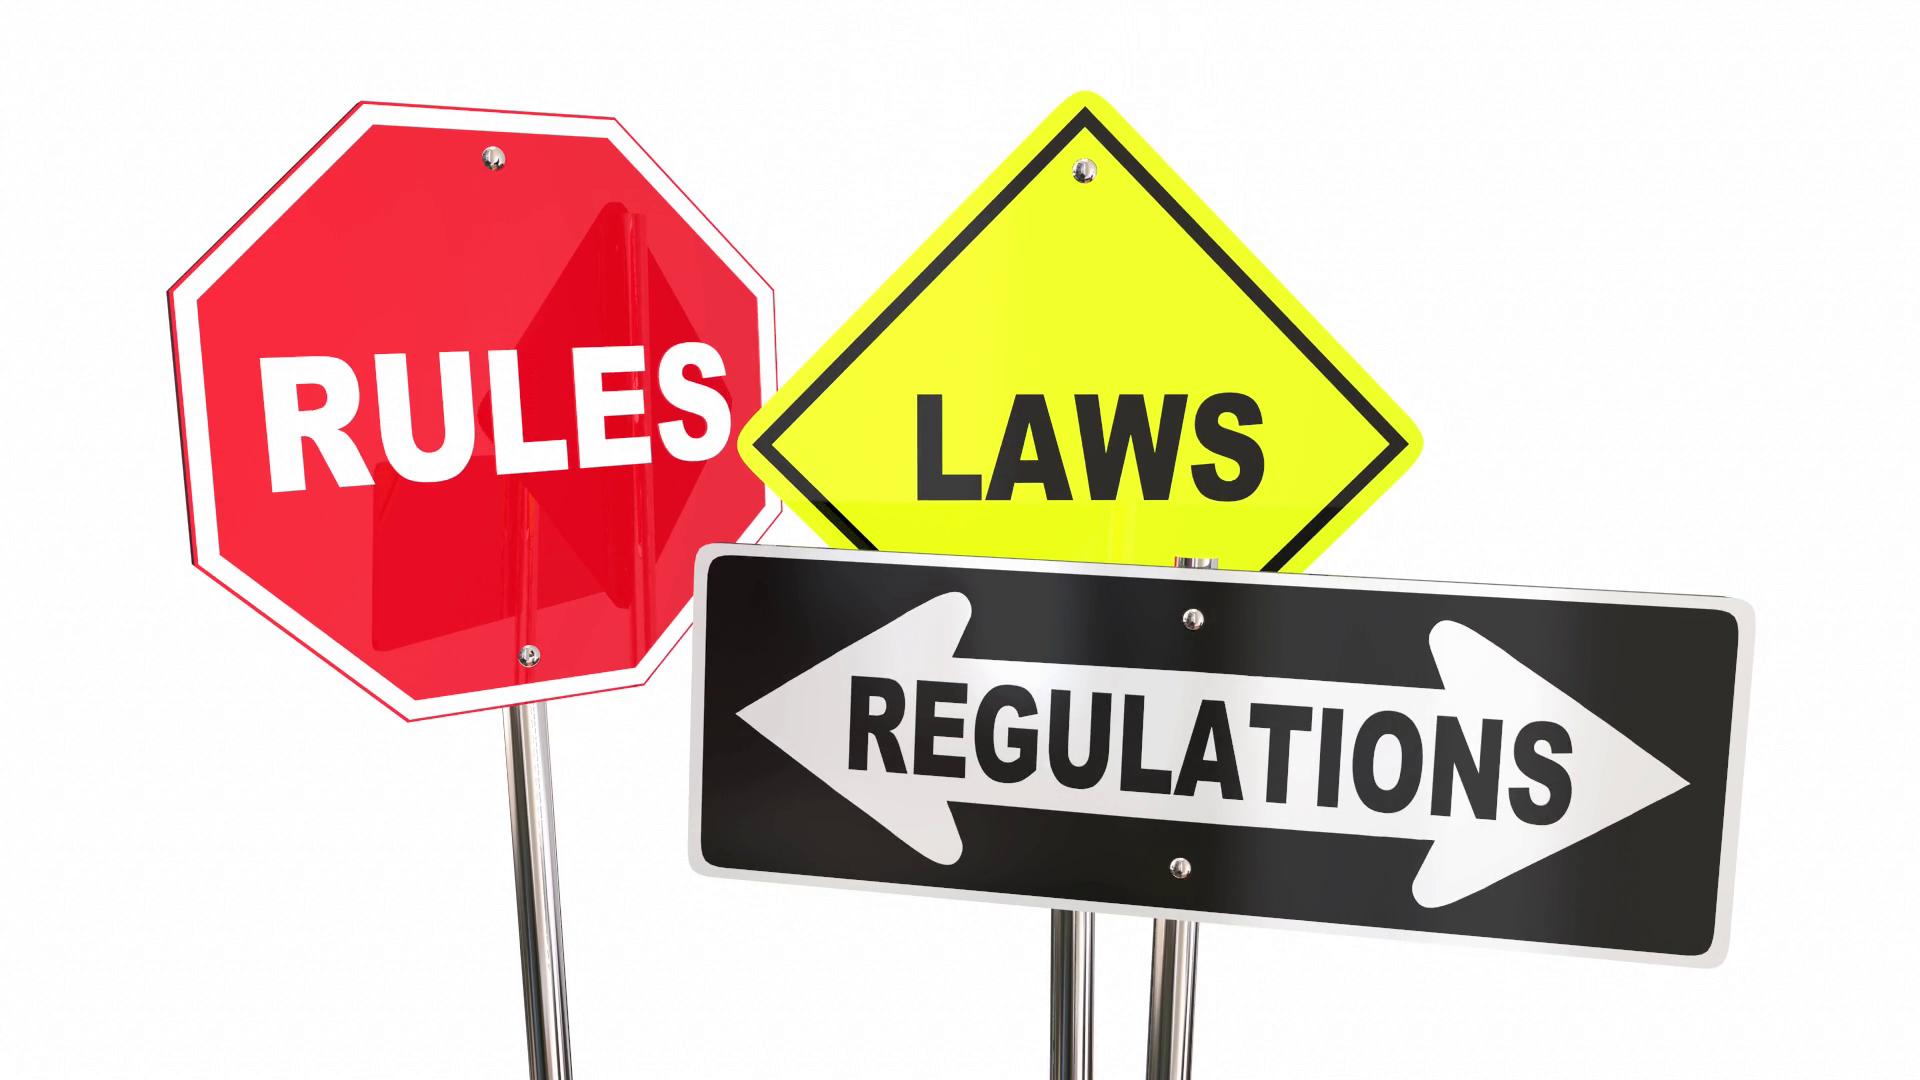 Rules Of The Road Png - Rules Laws Regulations Stop Yield Road Signs 3 D Animation Motion  Background - Videoblocks